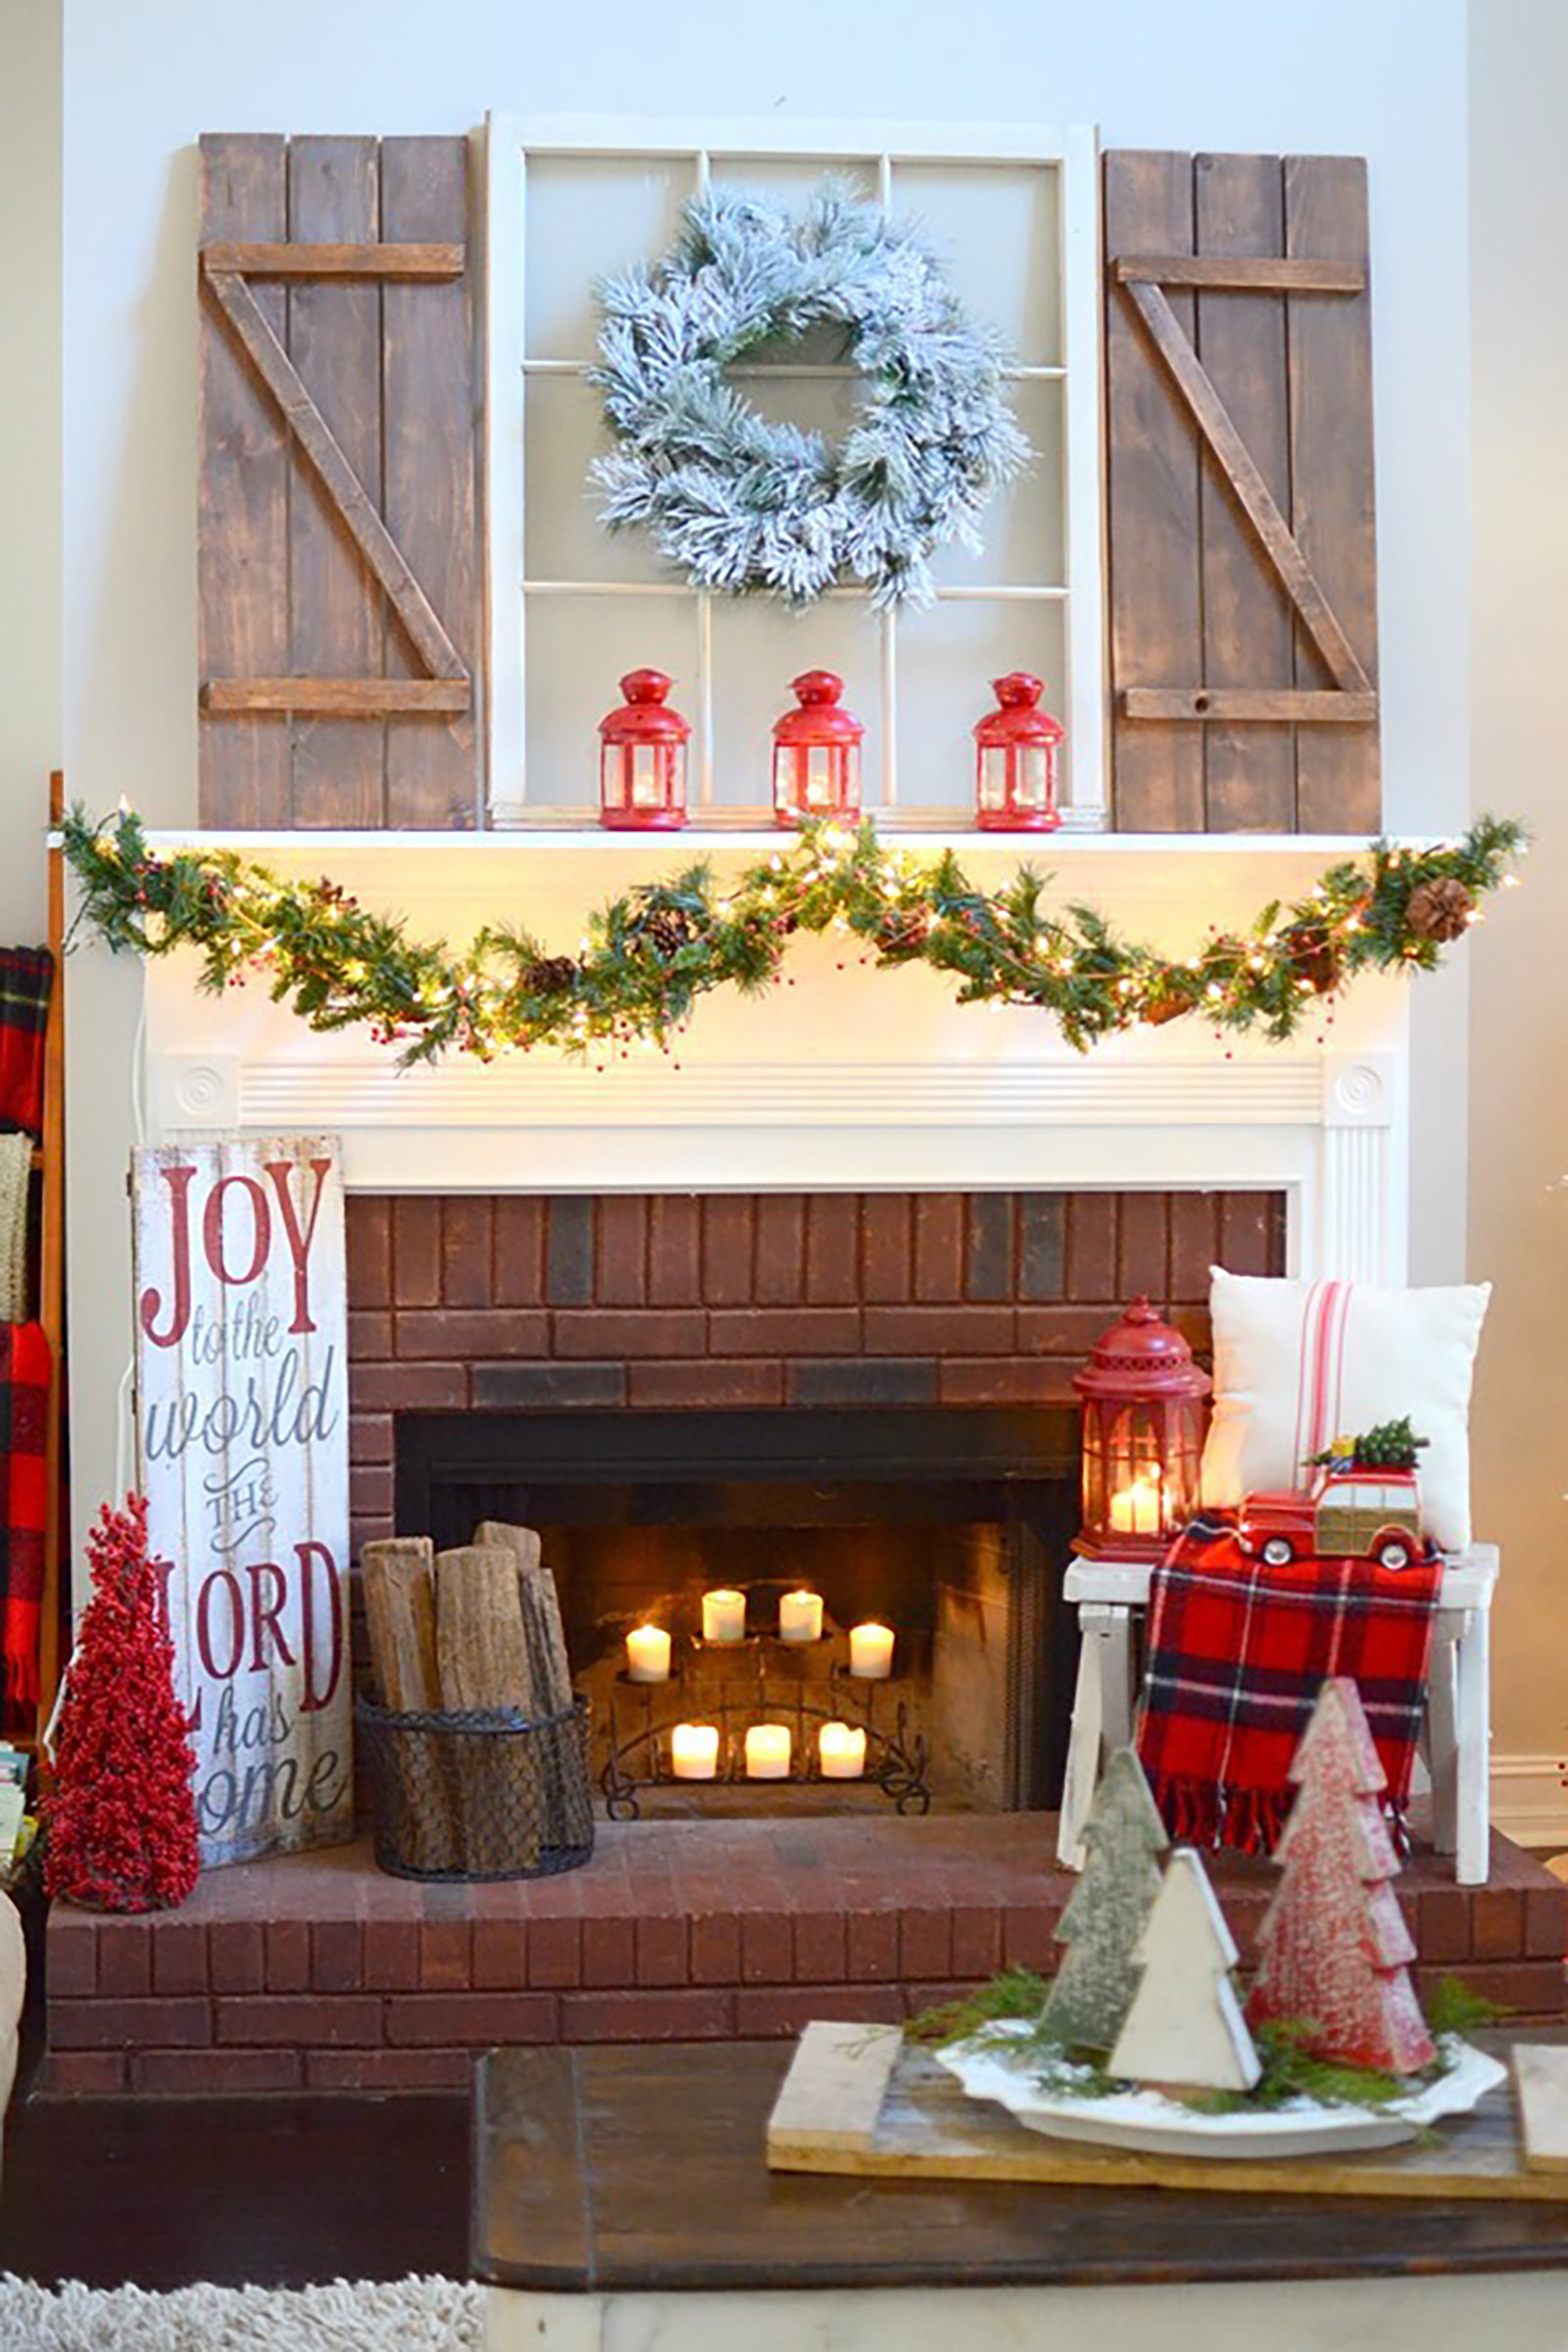 Christmas Decoration Fireplace Mantel  35 Christmas Mantel Decorations Ideas for Holiday